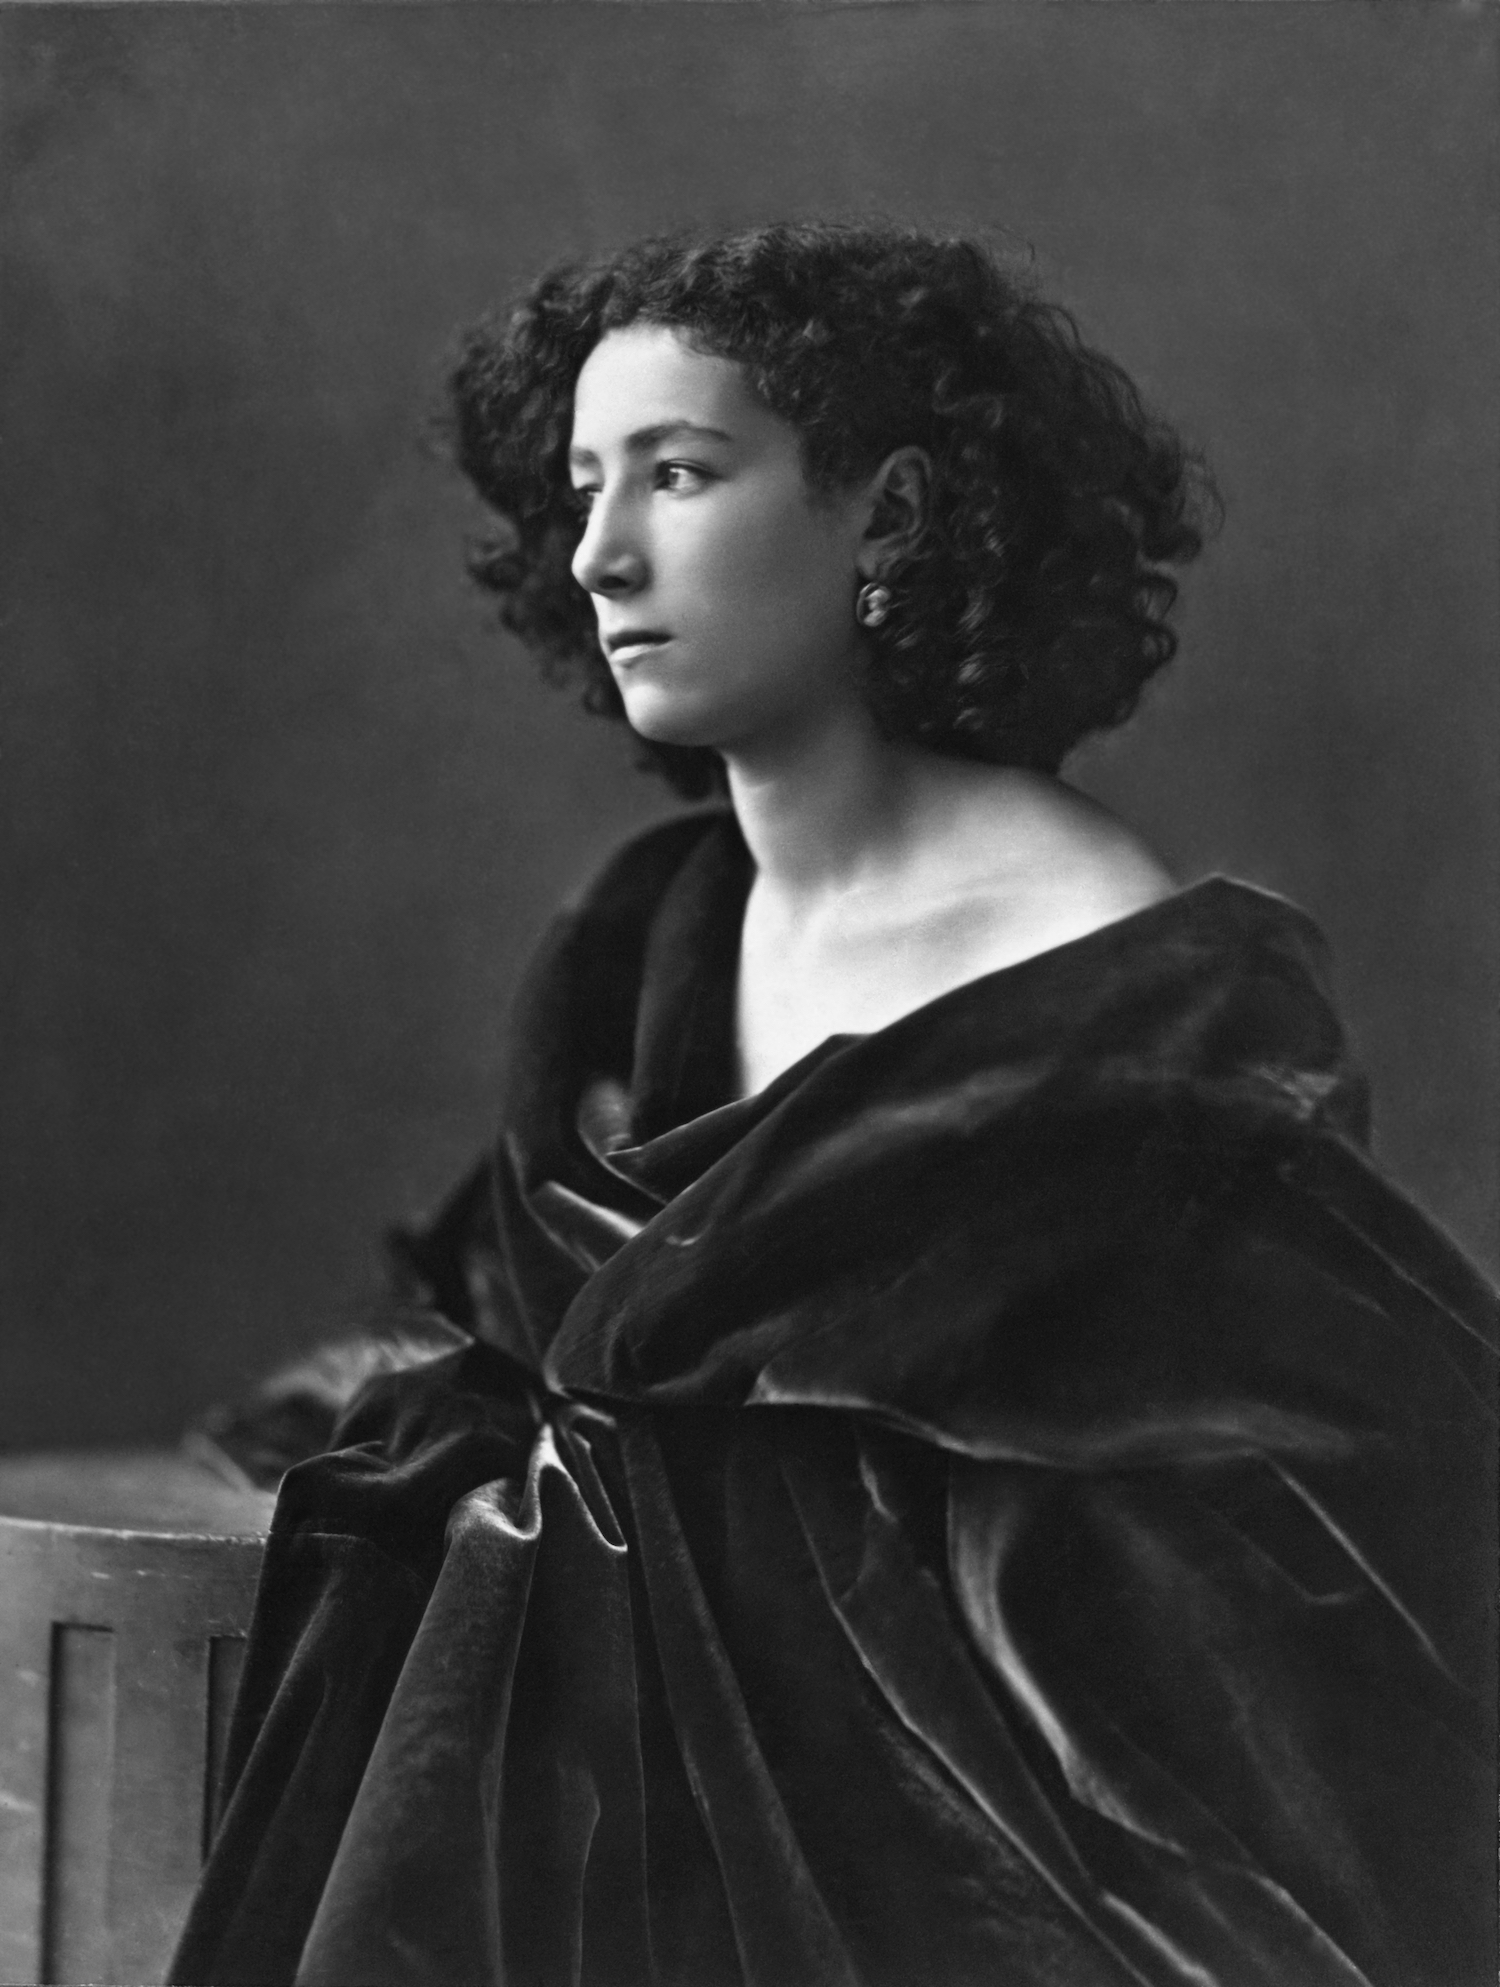 Sarah Bernhardt, photograph by Nadar, about 1864